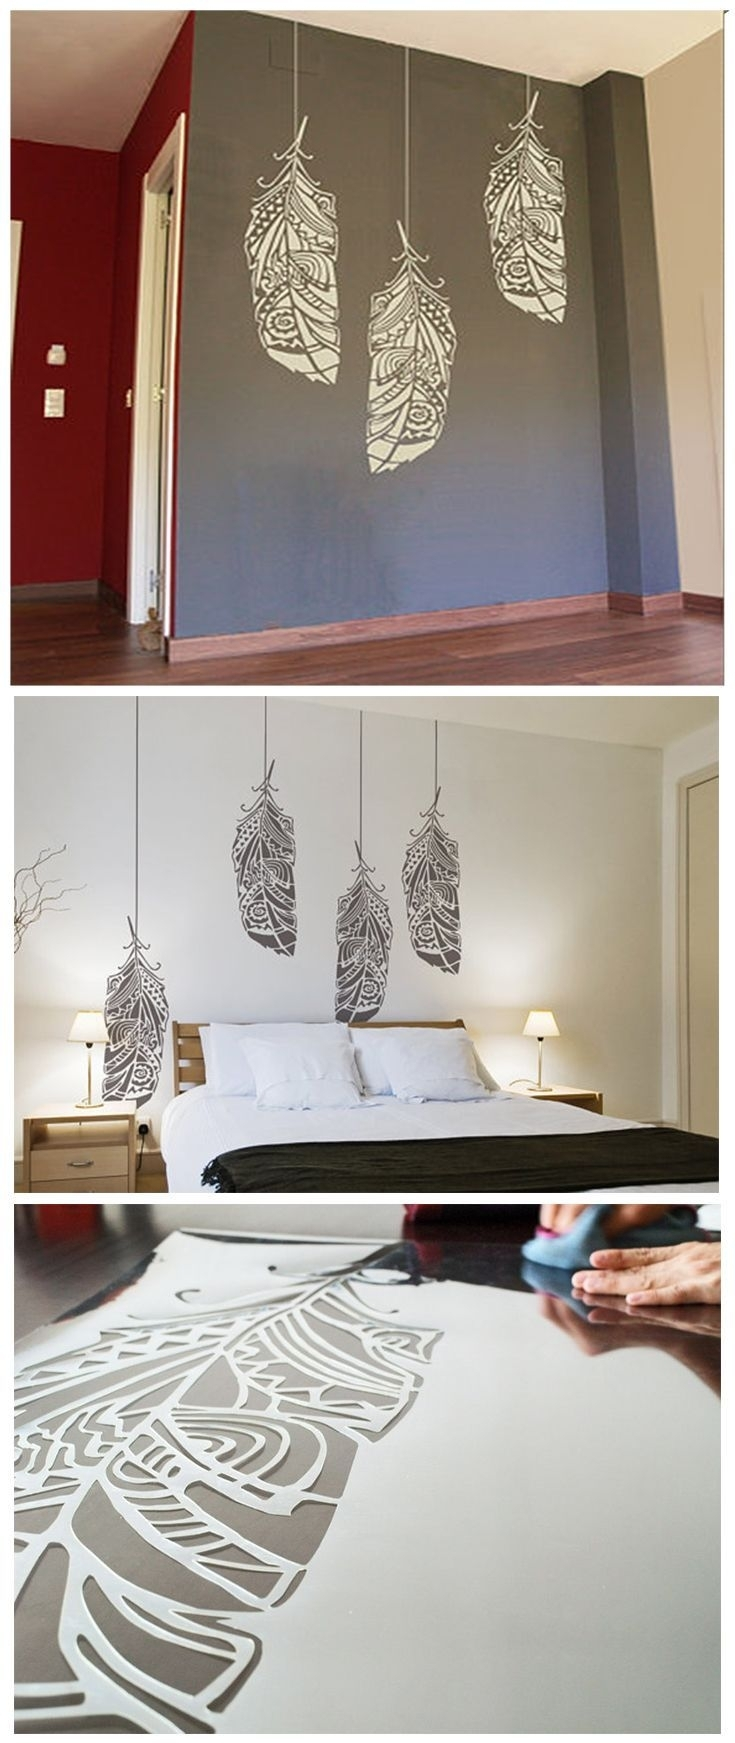 Feather Stencil, Ethnic Decor Element For Wall, Furniture Or In Latest Scandinavian Fabric Wall Art (View 6 of 15)